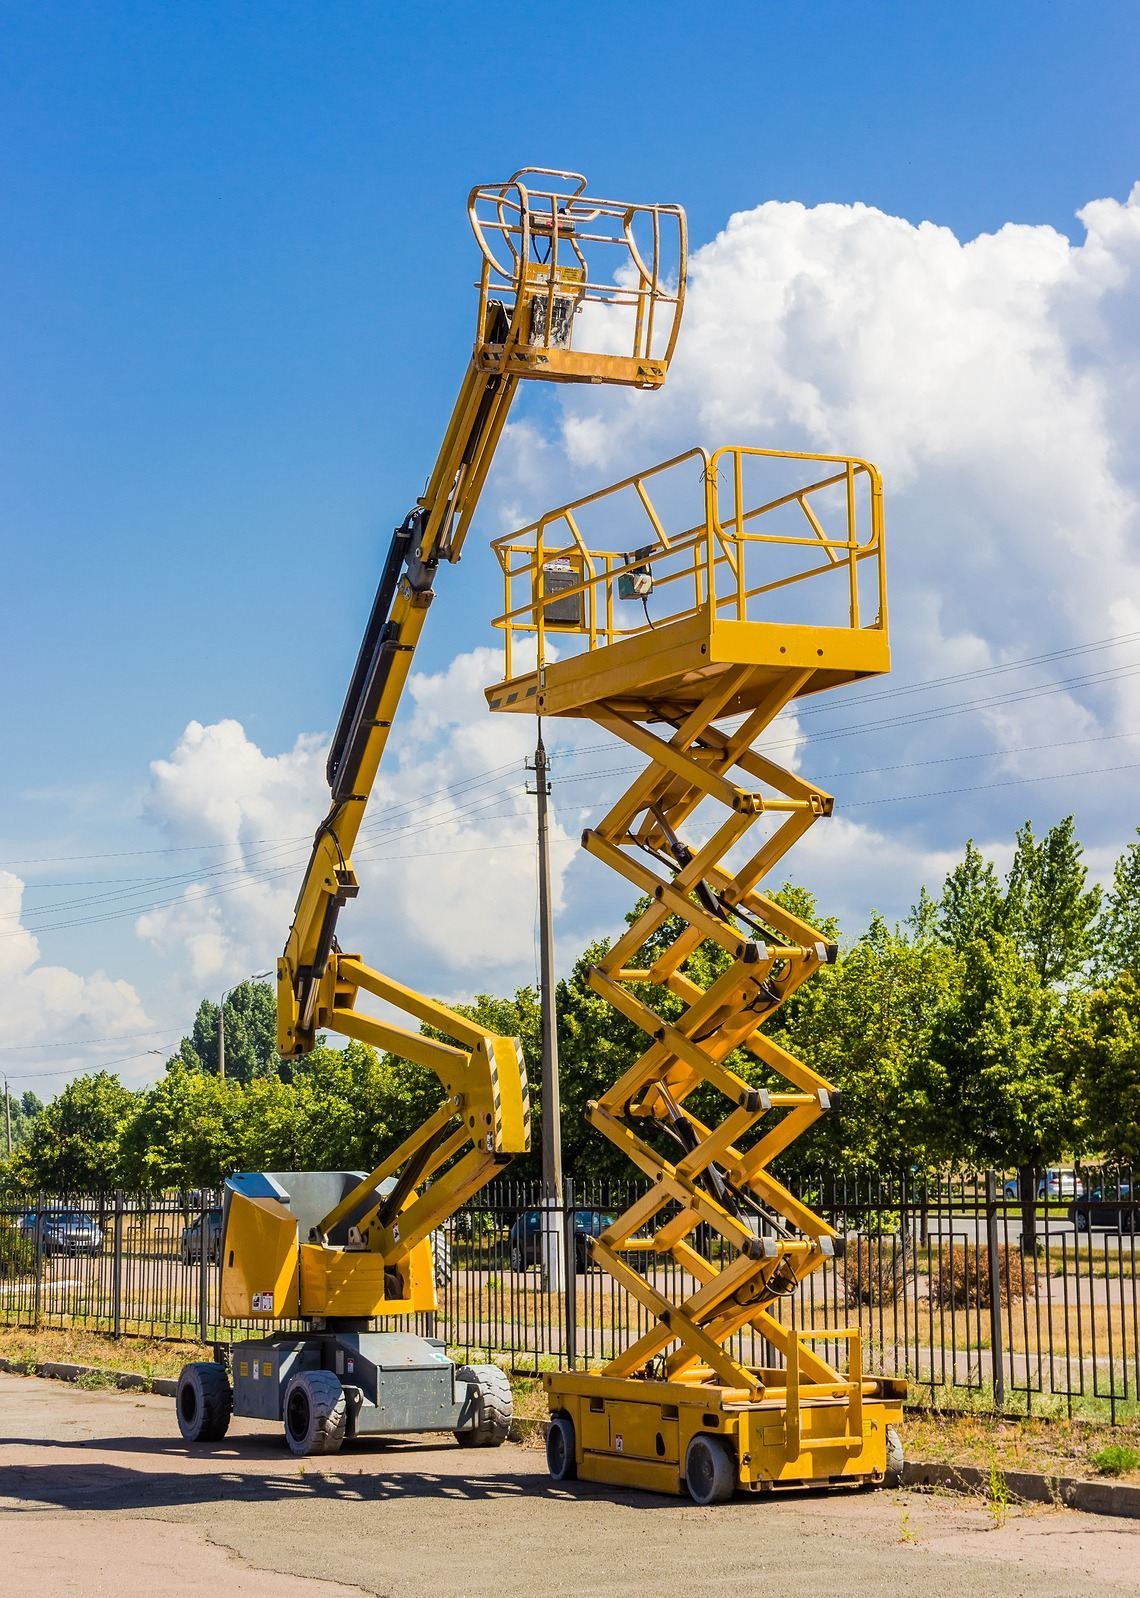 Cherry pick and scissor lift training with Tamar Valley Training